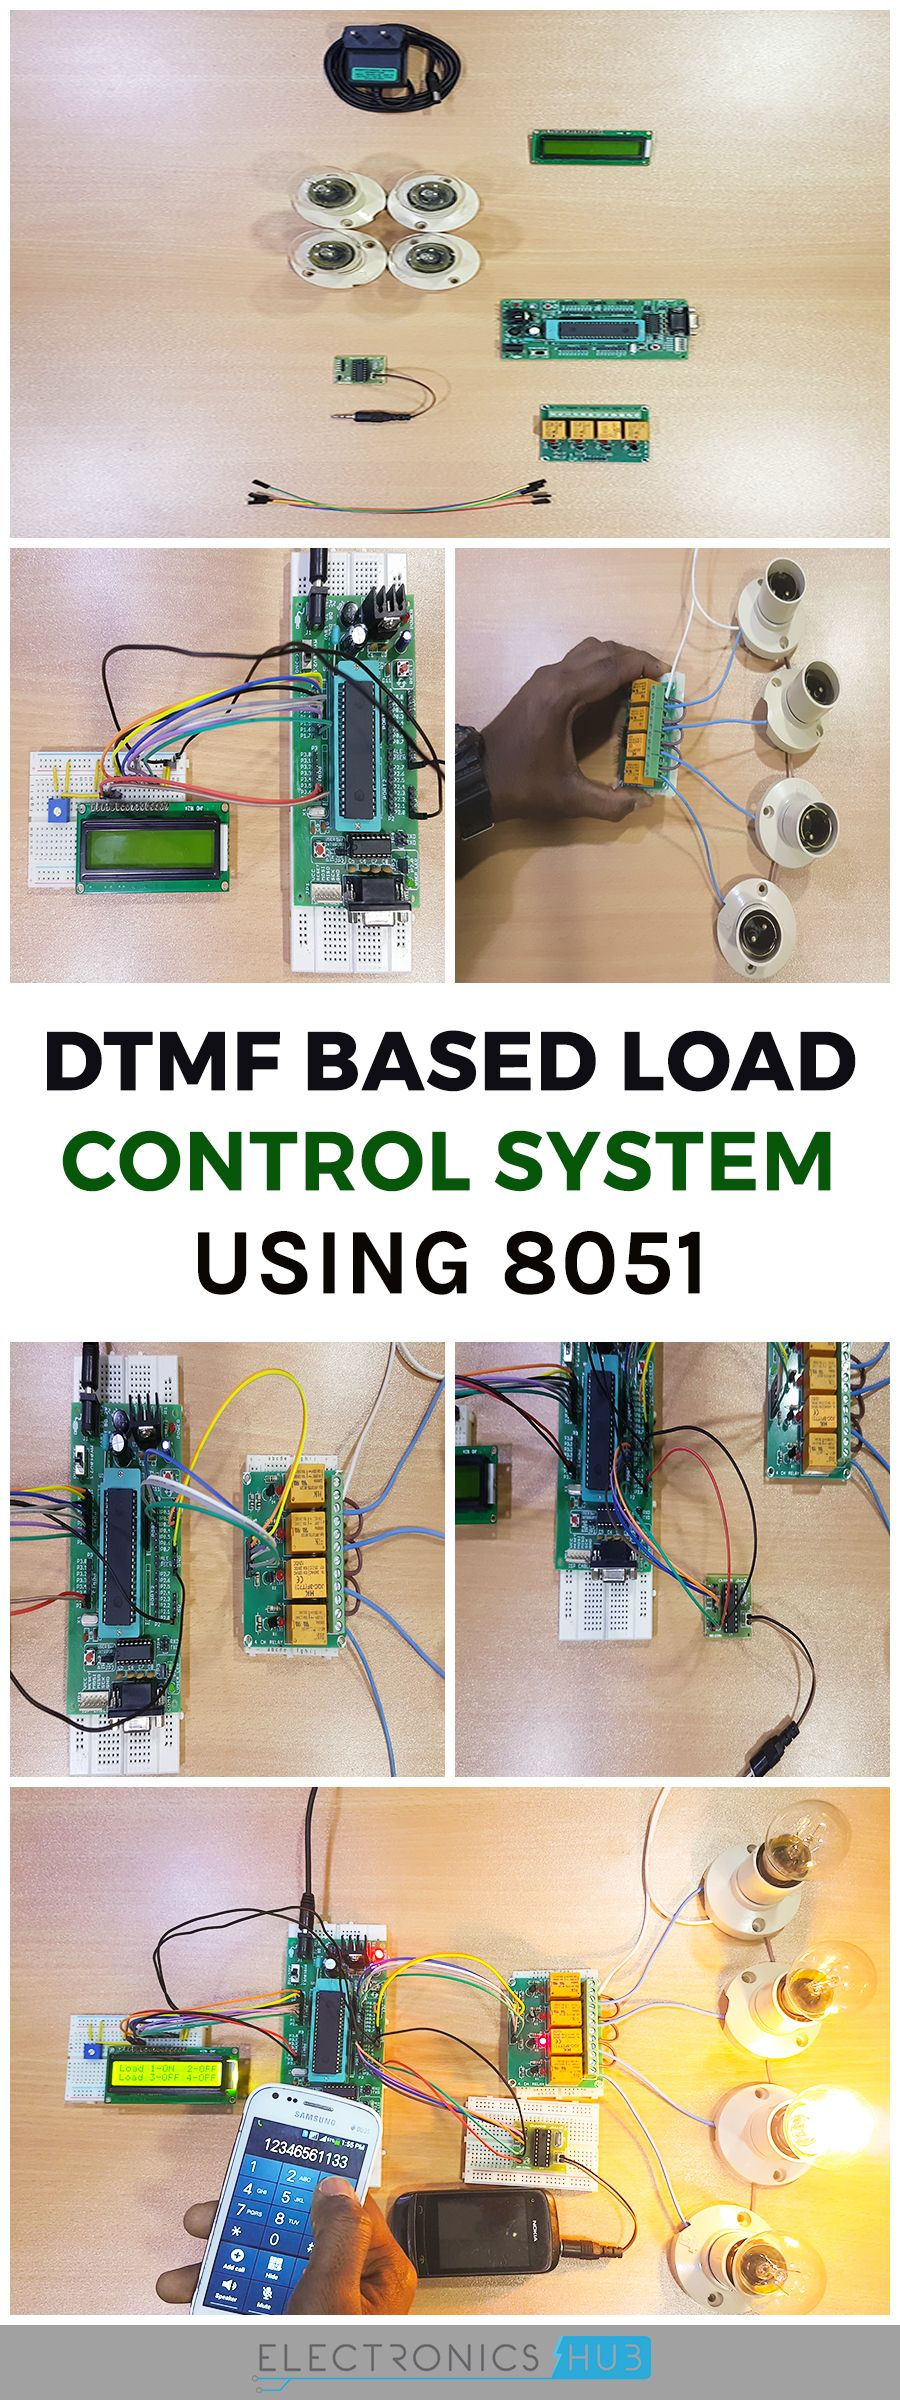 Dtmf Based Home Automation System Using Microcontroller Arduino Circuit Diagram Systemcircuit Diagramiron